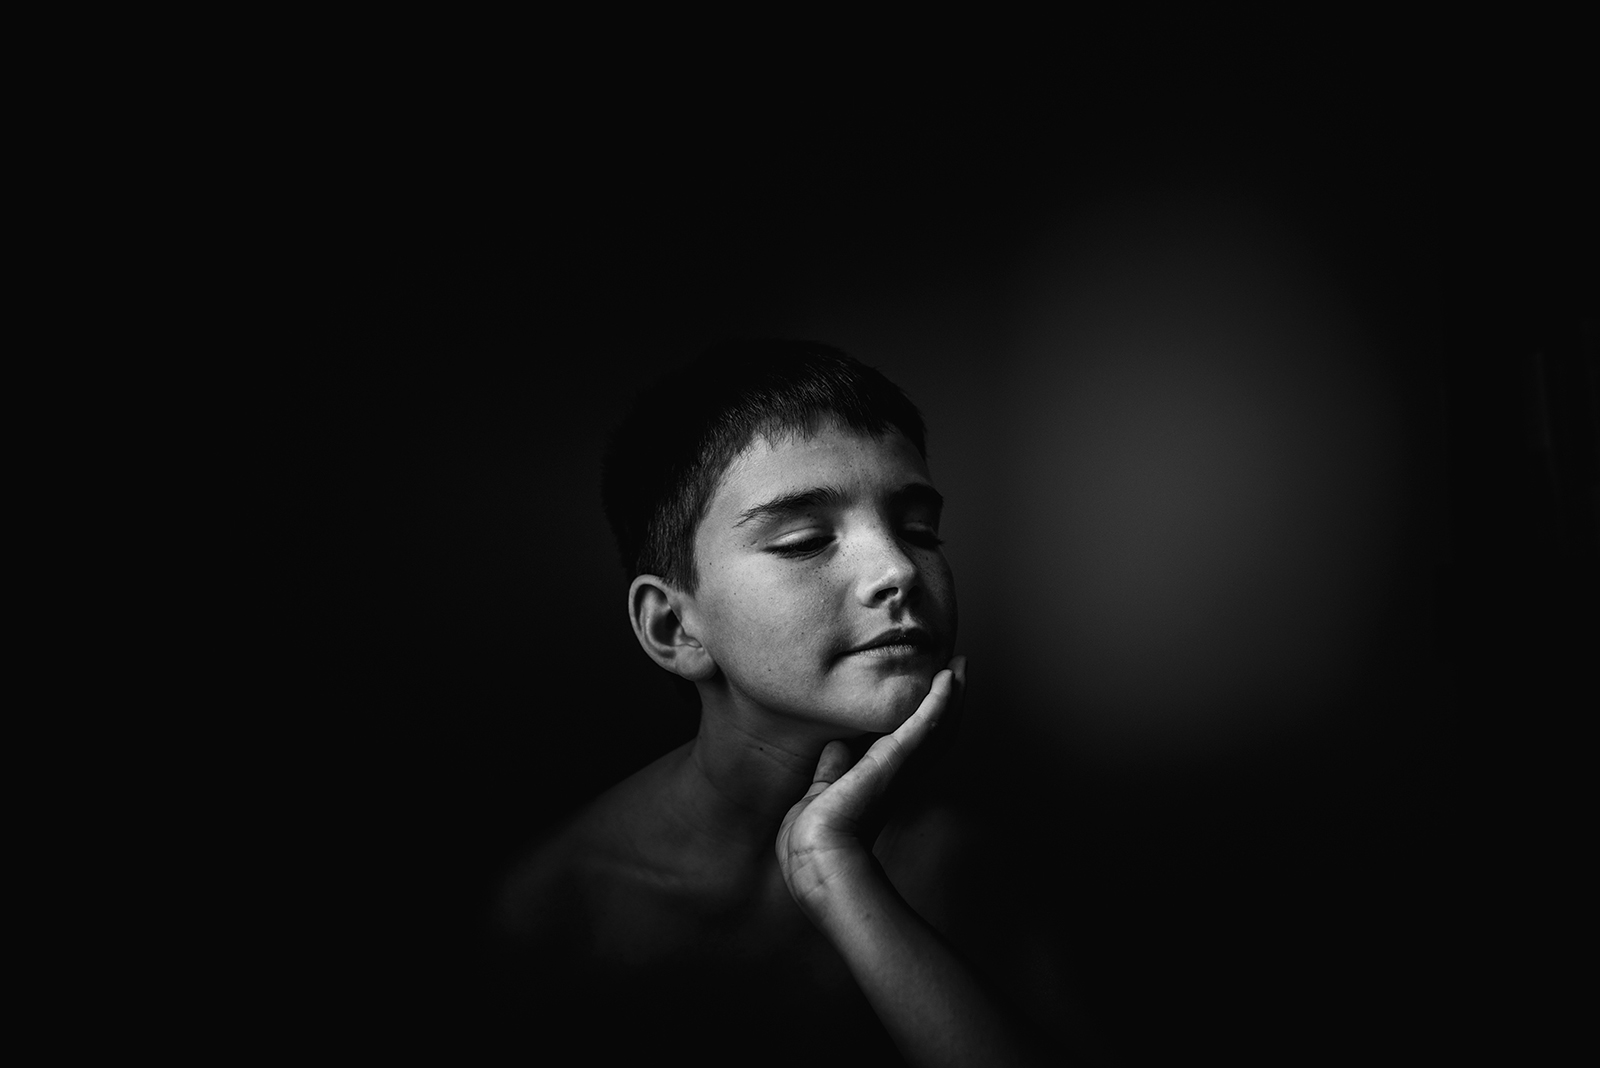 Soulful image of a boy in black and white